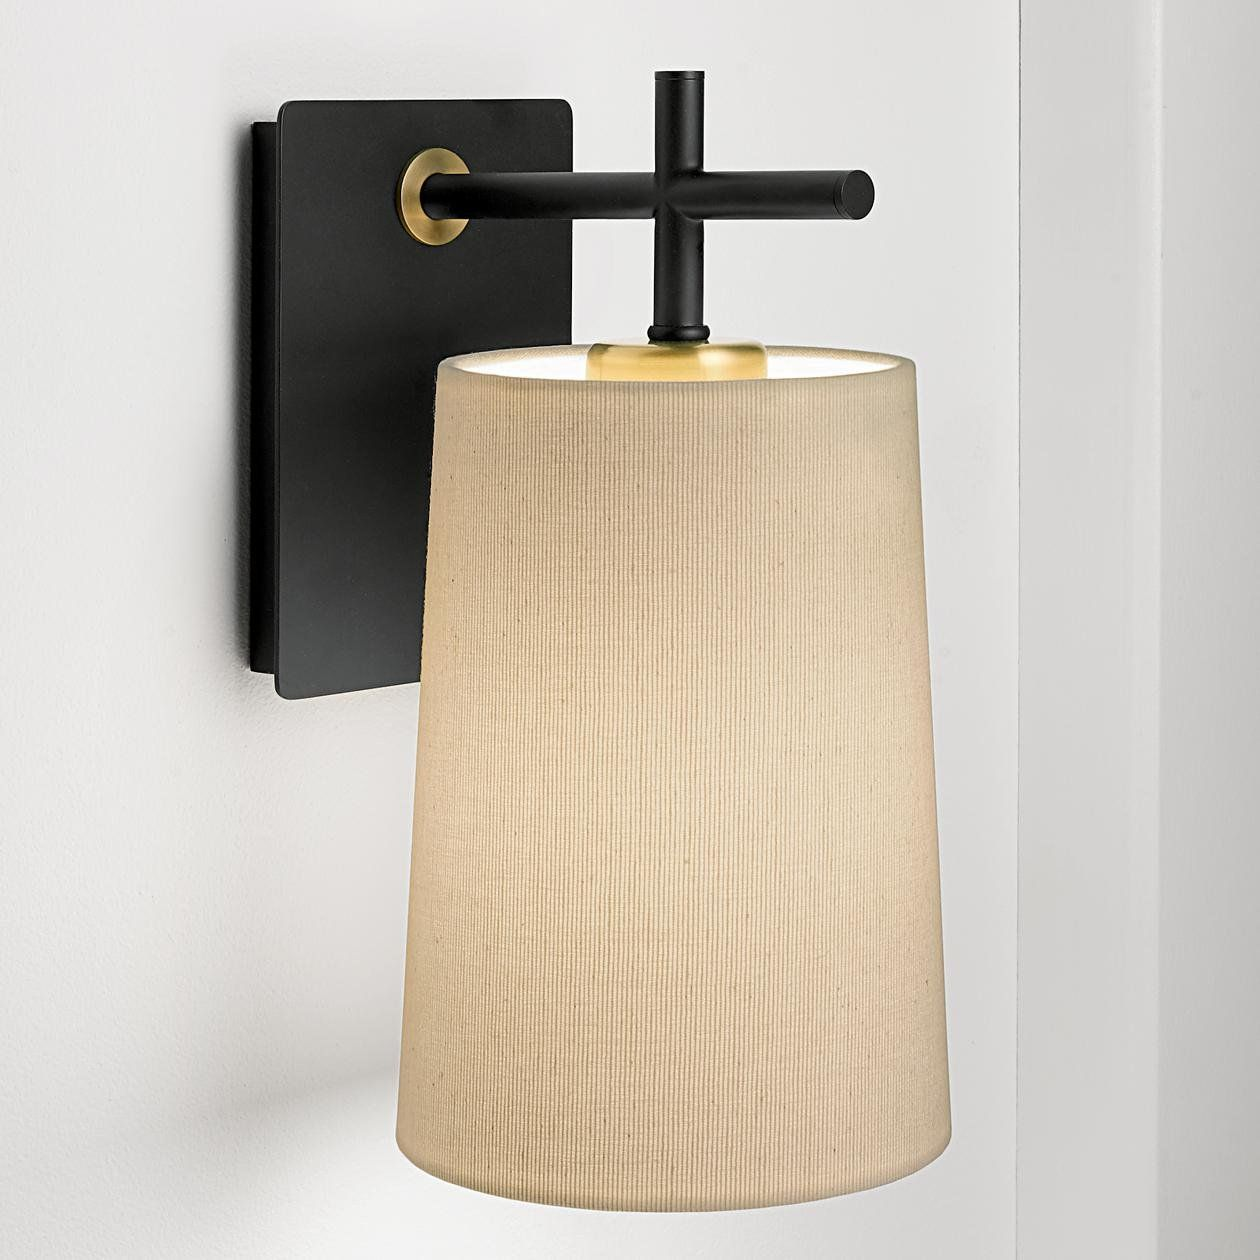 Satin Black And Brushed Brass Wall Light Shade Wall Light